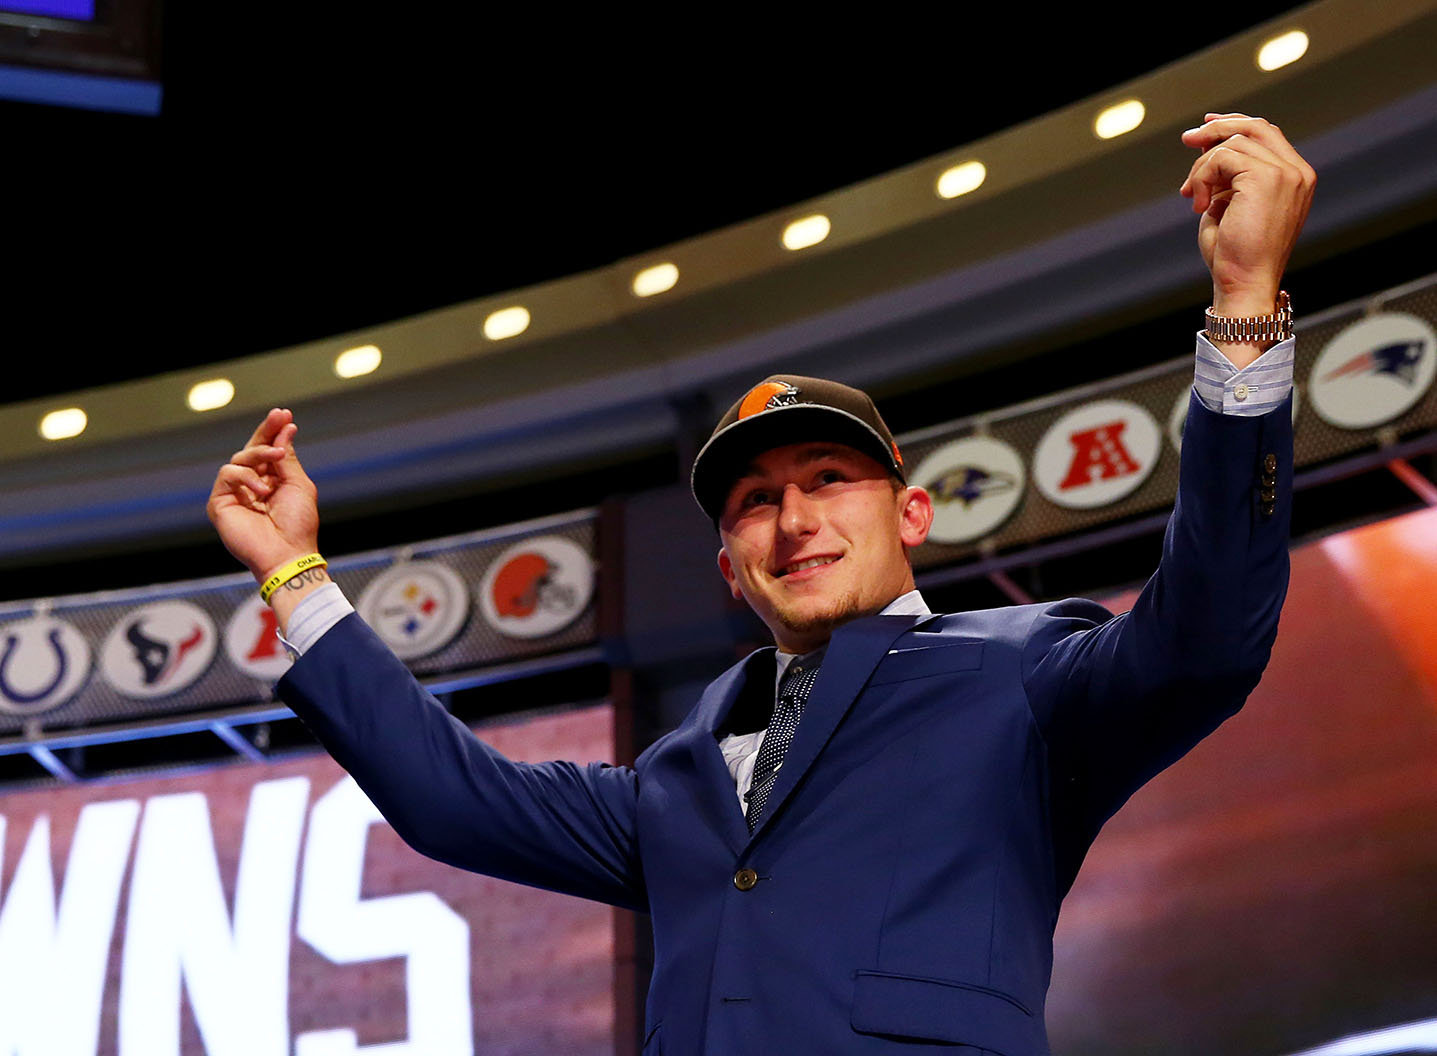 Johnny Manziel of the Texas A&M Aggies takes the stage after he was picked #22 overall by the Cleveland Browns during the first round of the 2014 NFL Draft at Radio City Music Hall on May 8, 2014 in New York City. (Elsa/Getty Images)